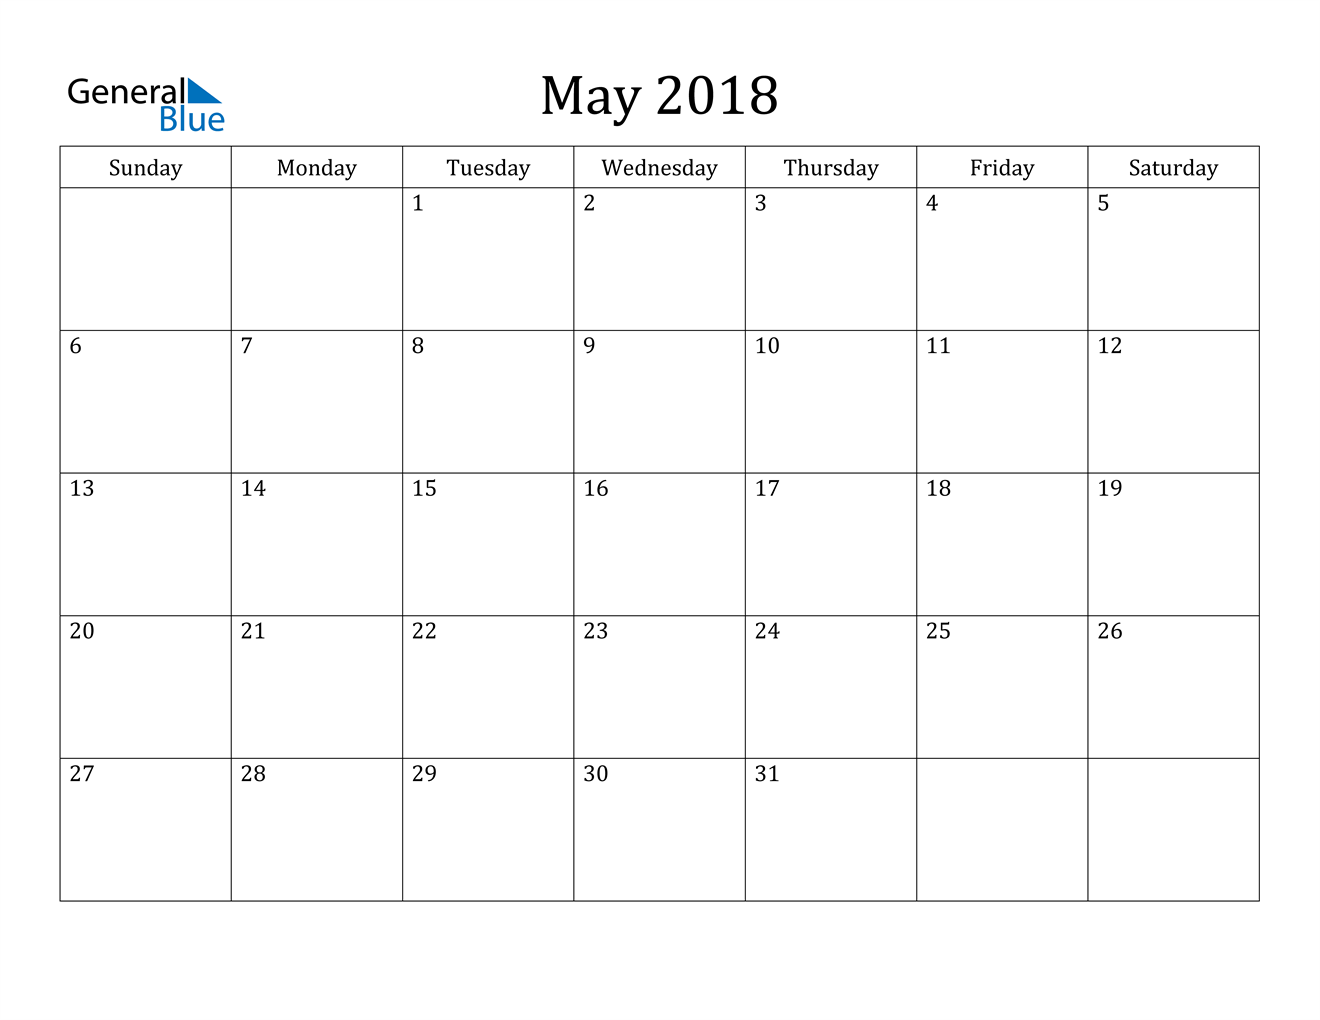 Image of May 2018 Classic Professional Calendar Calendar